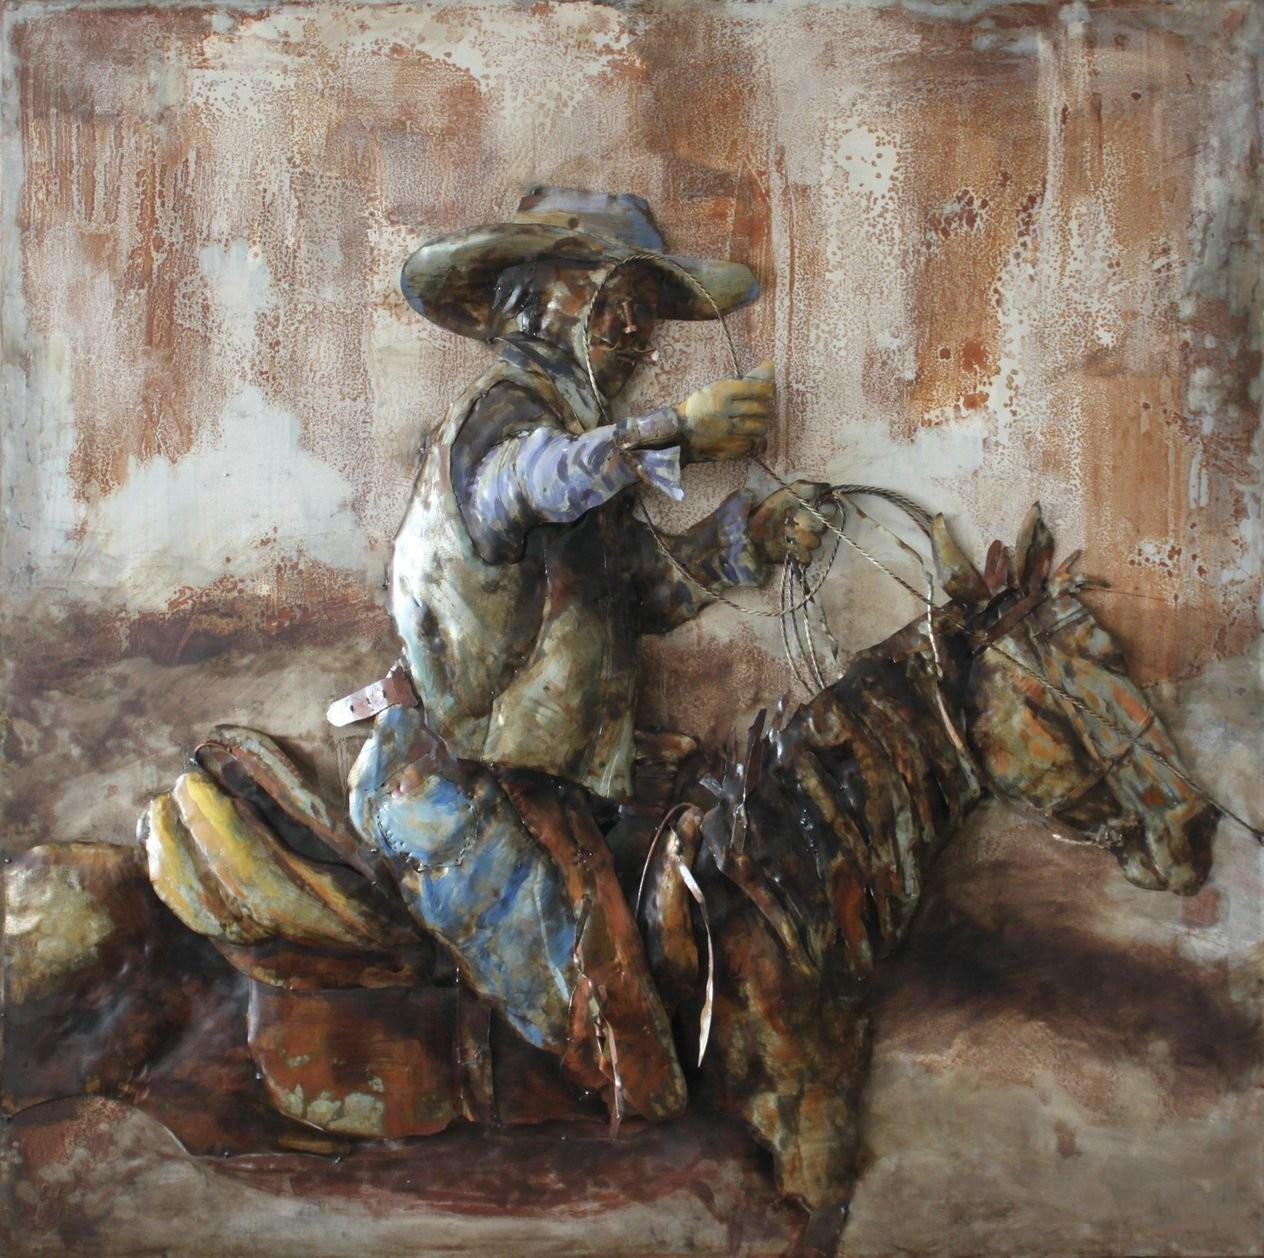 Cowboy Horse Side 3D Metal Wall Art Hand Painted In 3D Metal Wall Art (View 11 of 20)